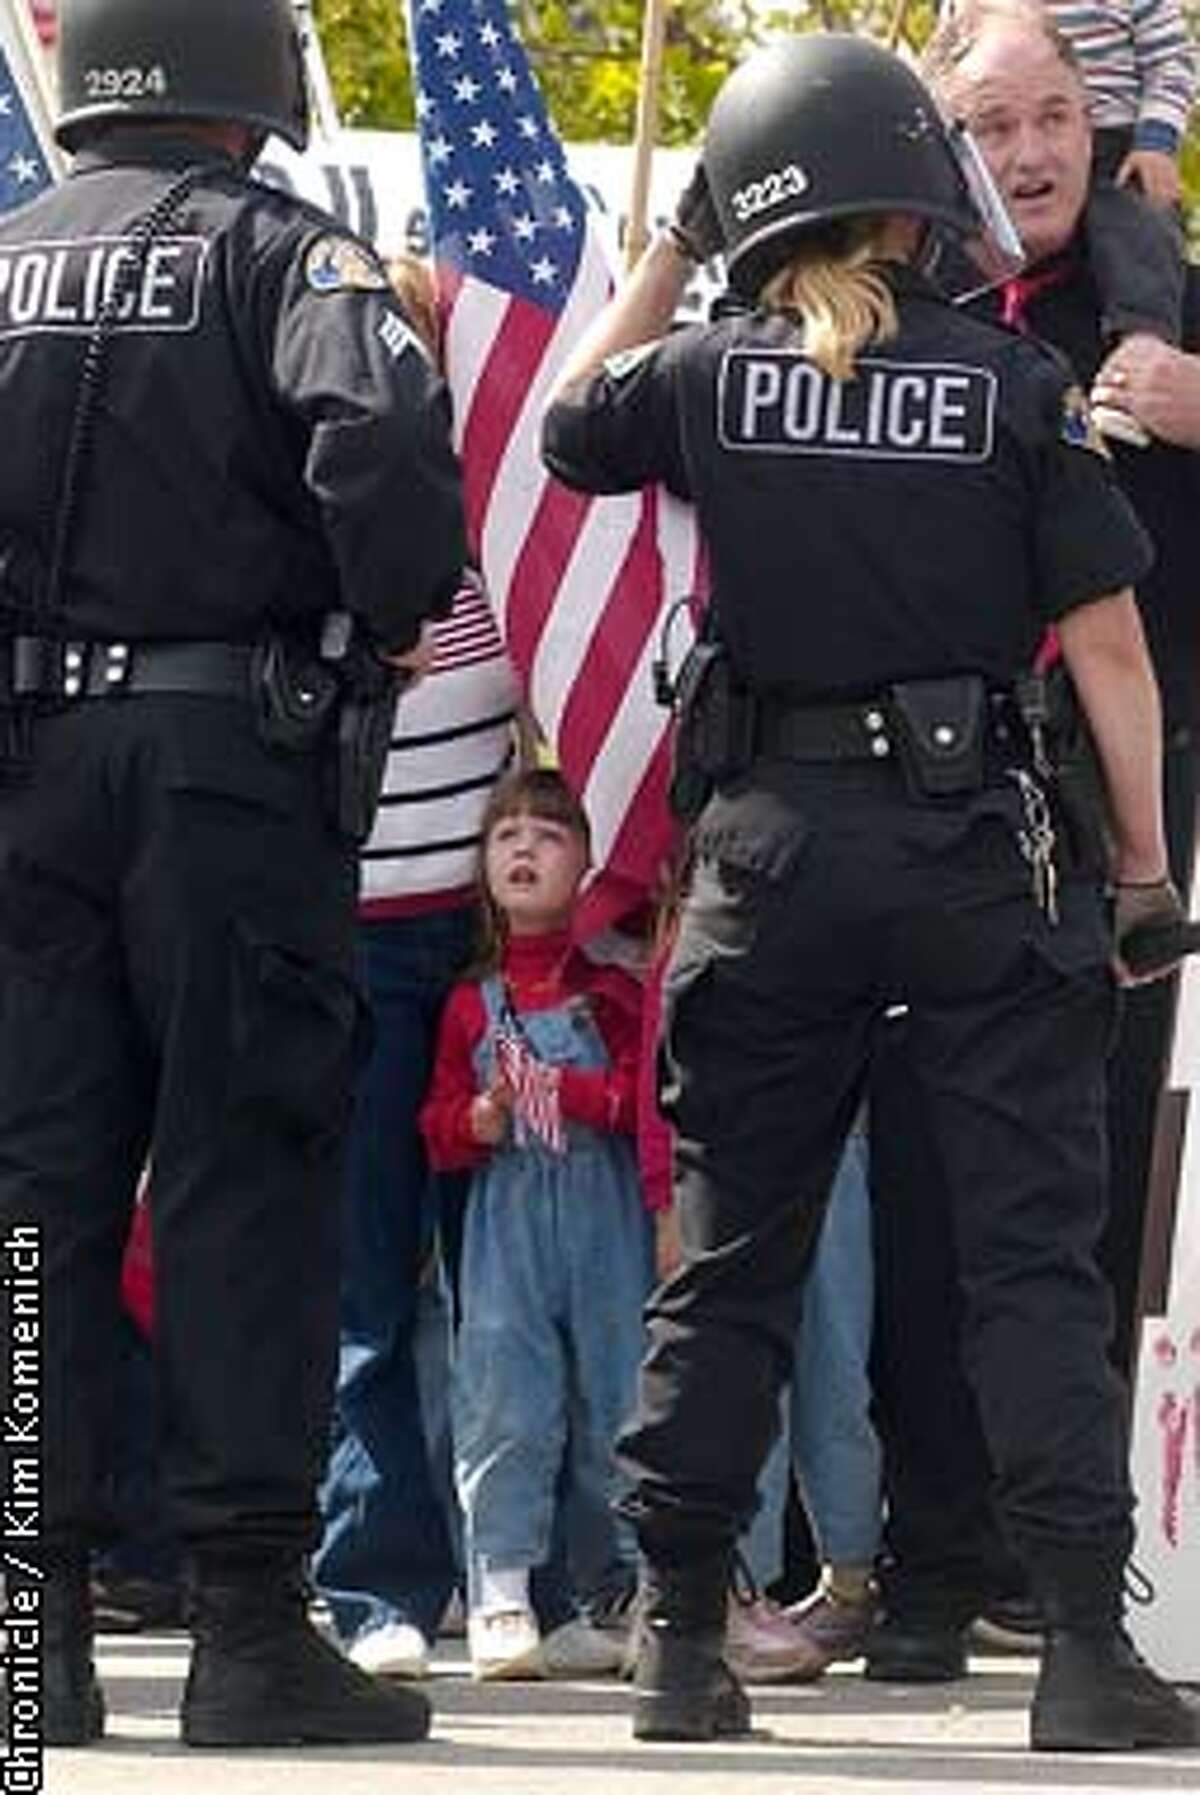 Jillian Hoglan, 3, looks up at police offcers during the protest. Her family was among those supporting Pres. Bush. Police hold the line and keep the peace between protesters and supporters along Coleman Avenue during Pres. George Bush's speech at United Defense in Santa Clara KIM KOMENICH / The Chronicle